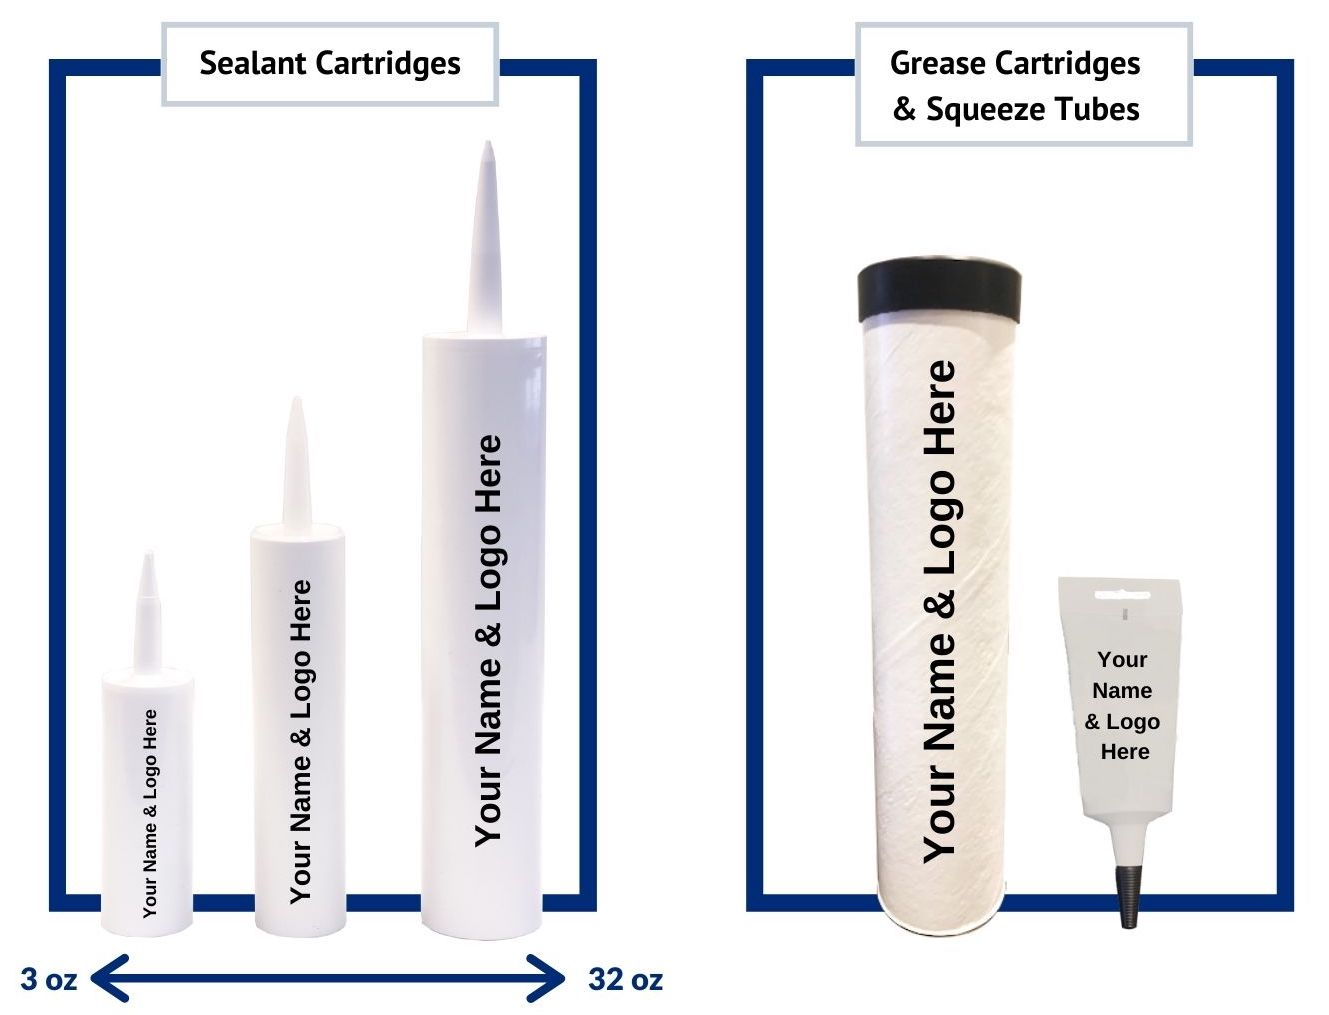 Sealant and Grease Cartridges